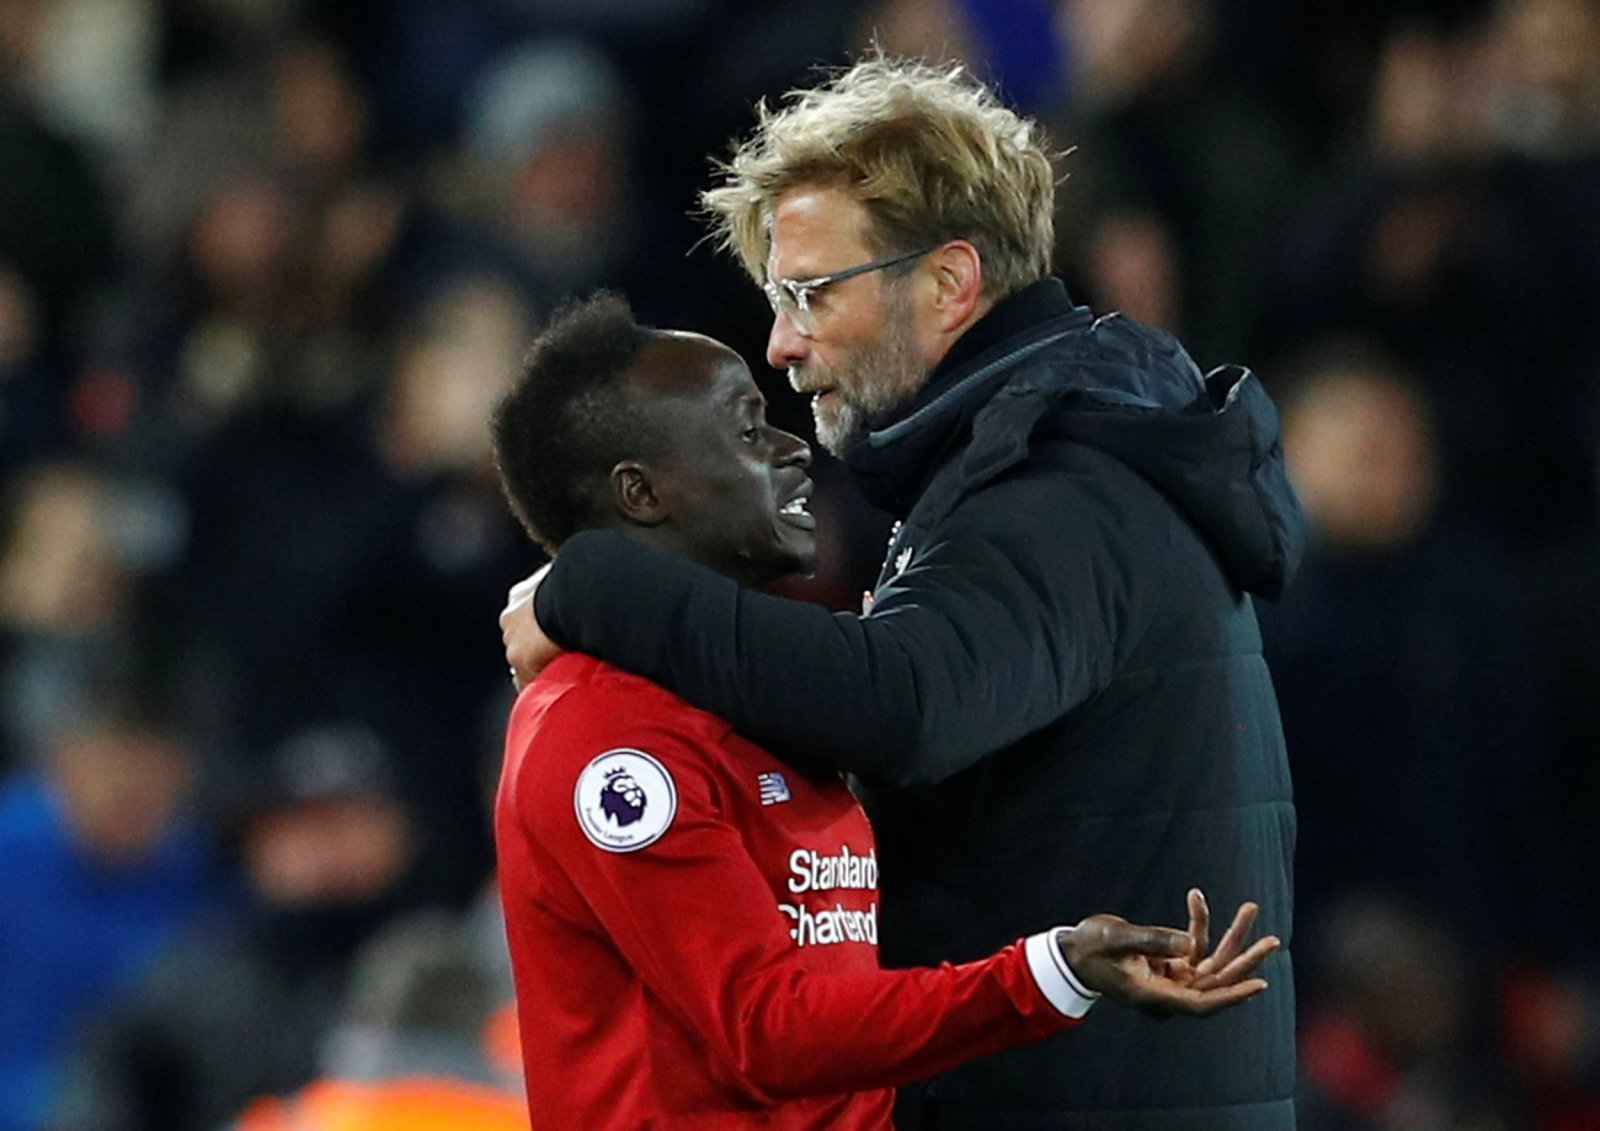 Forget Lovren, surely Sadio Mane will cost Liverpool more points this season